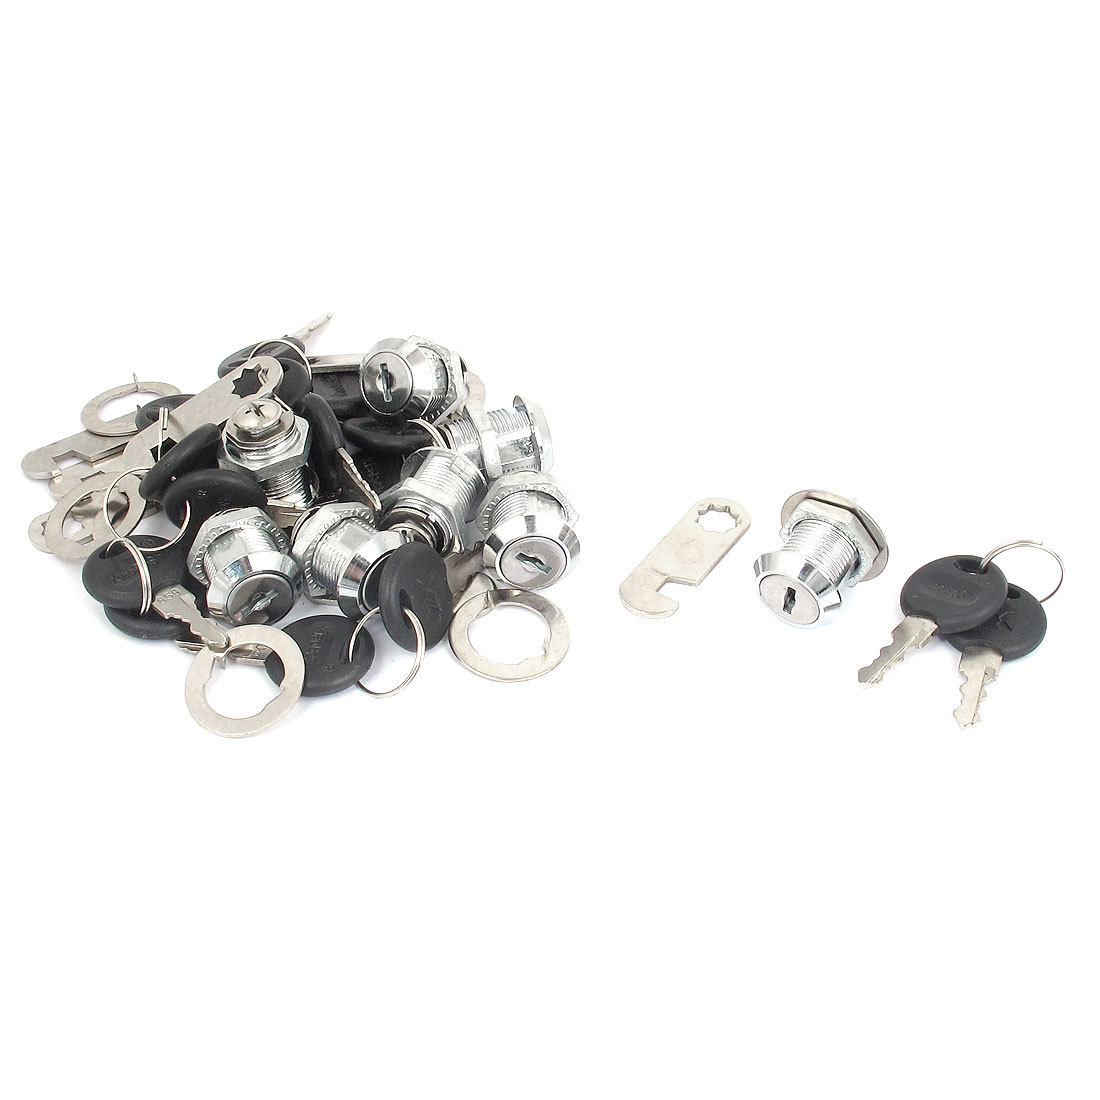 Mailbox Cabinets Drawer Locker 18mm Thread Shaft Security Metal Round Head Cam Lock w Keys 8pcs